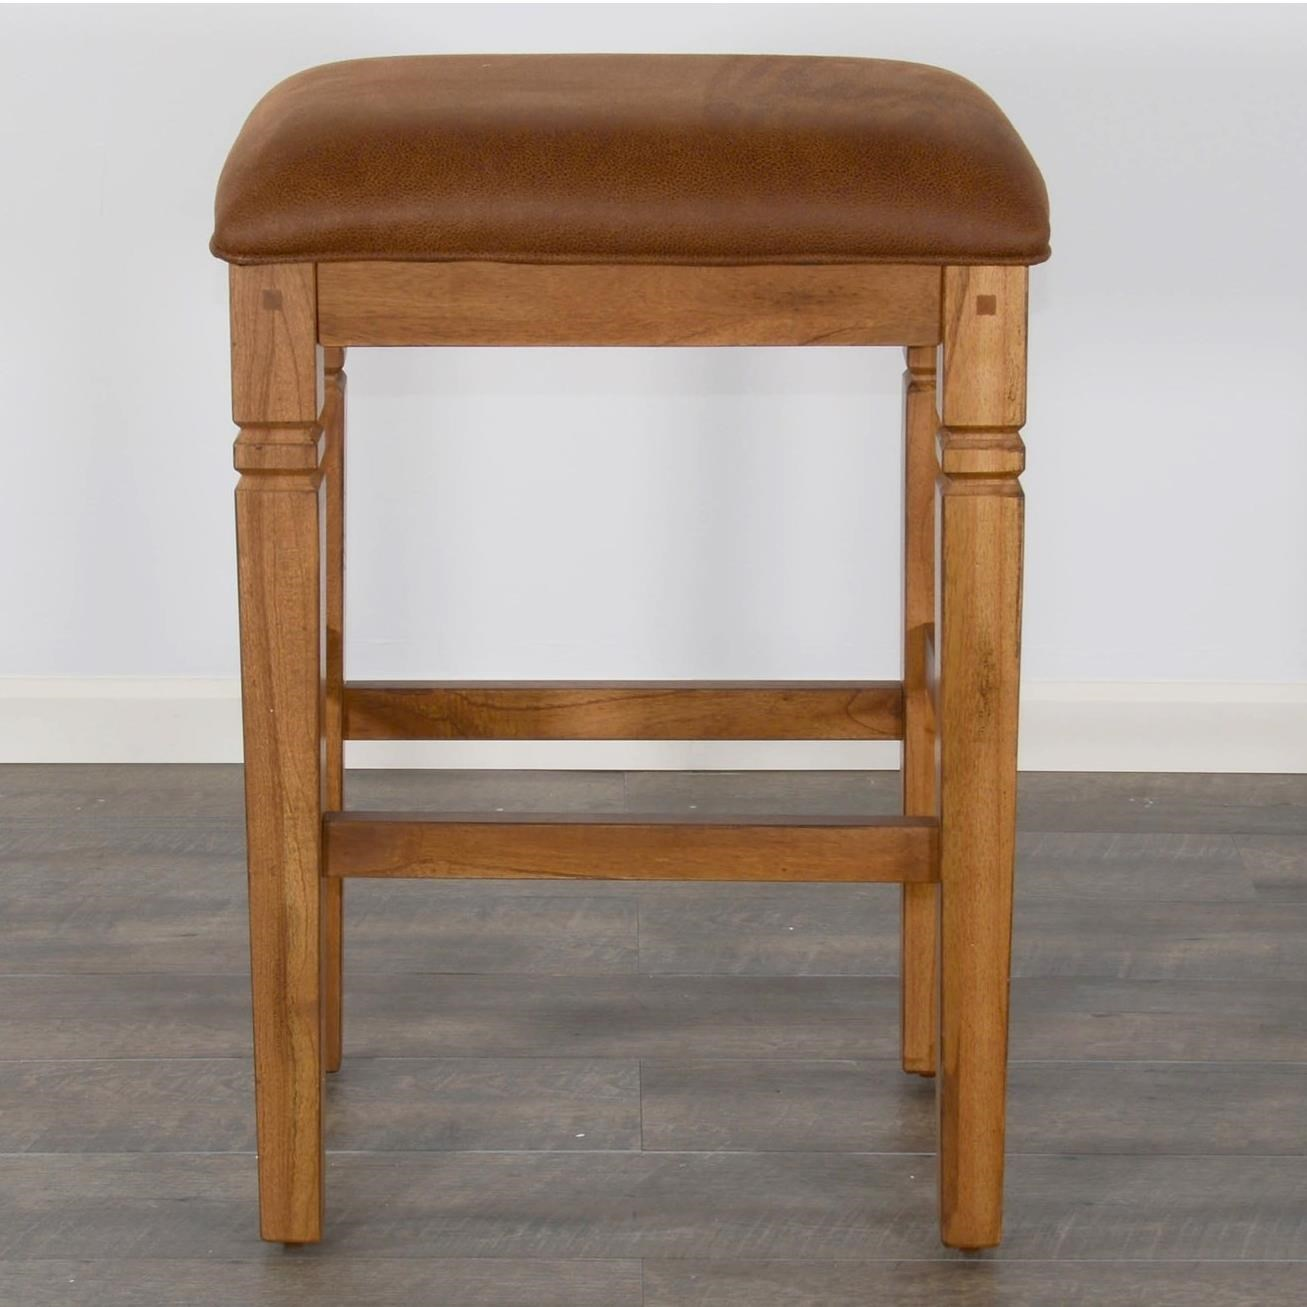 Sedona 2 Backless Stool w/ Cushion Seat by Sunny Designs at Sparks HomeStore